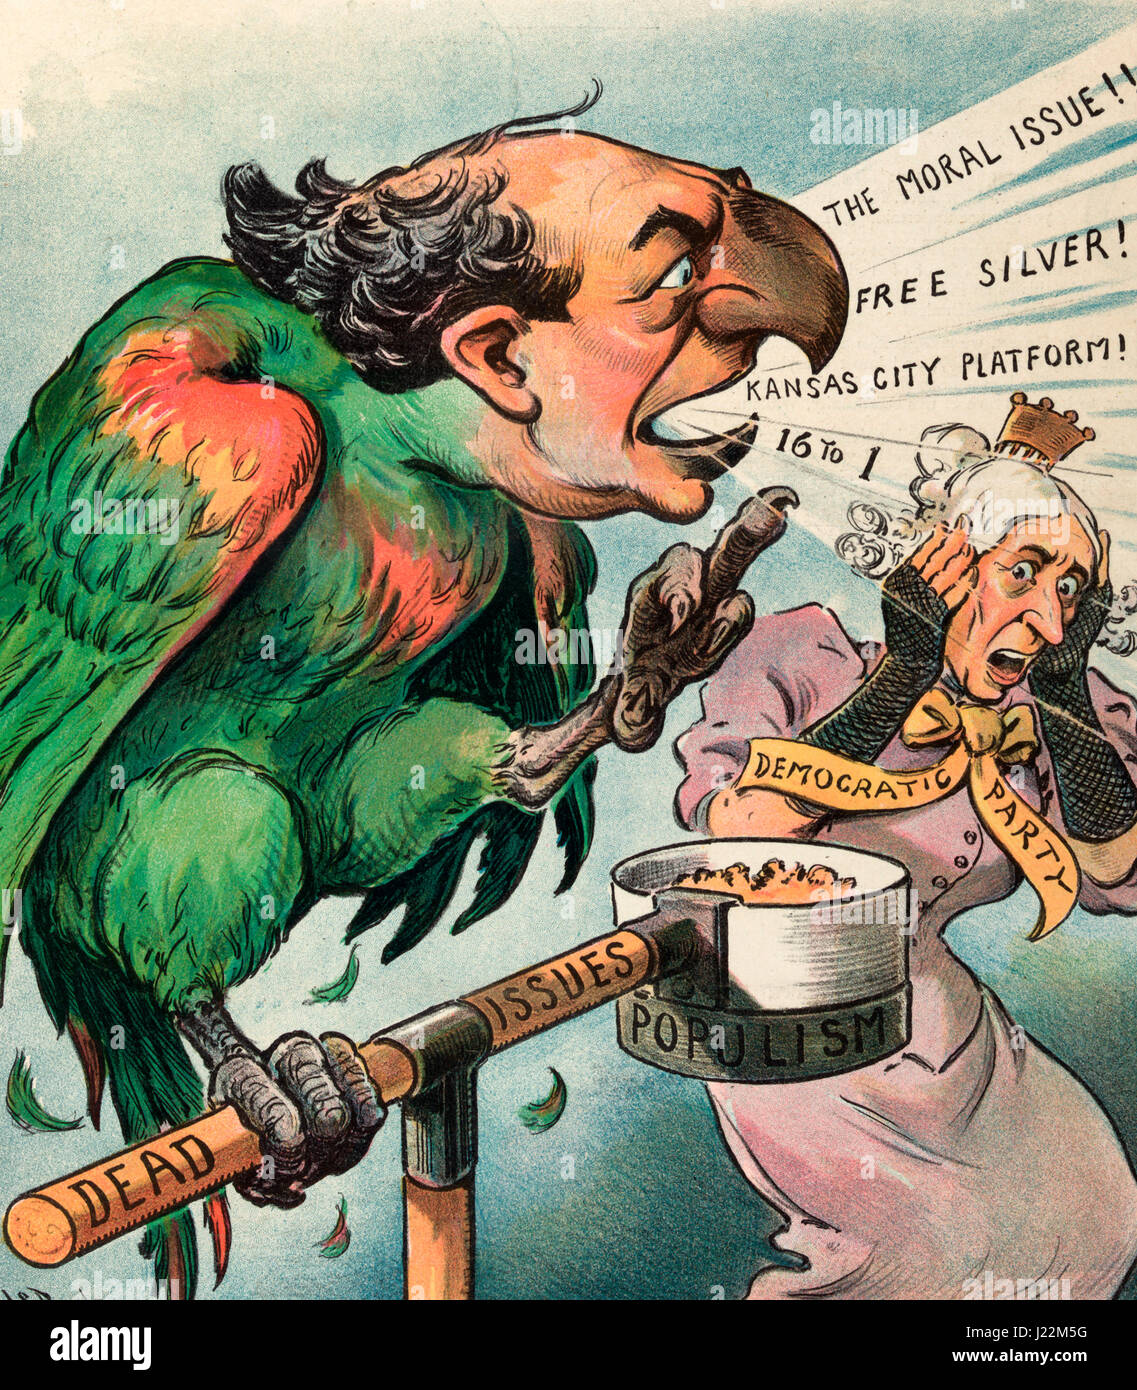 A chattering nuisance - Illustration shows William Jennings Bryan as a parrot 'chattering' at an old woman - Stock Image